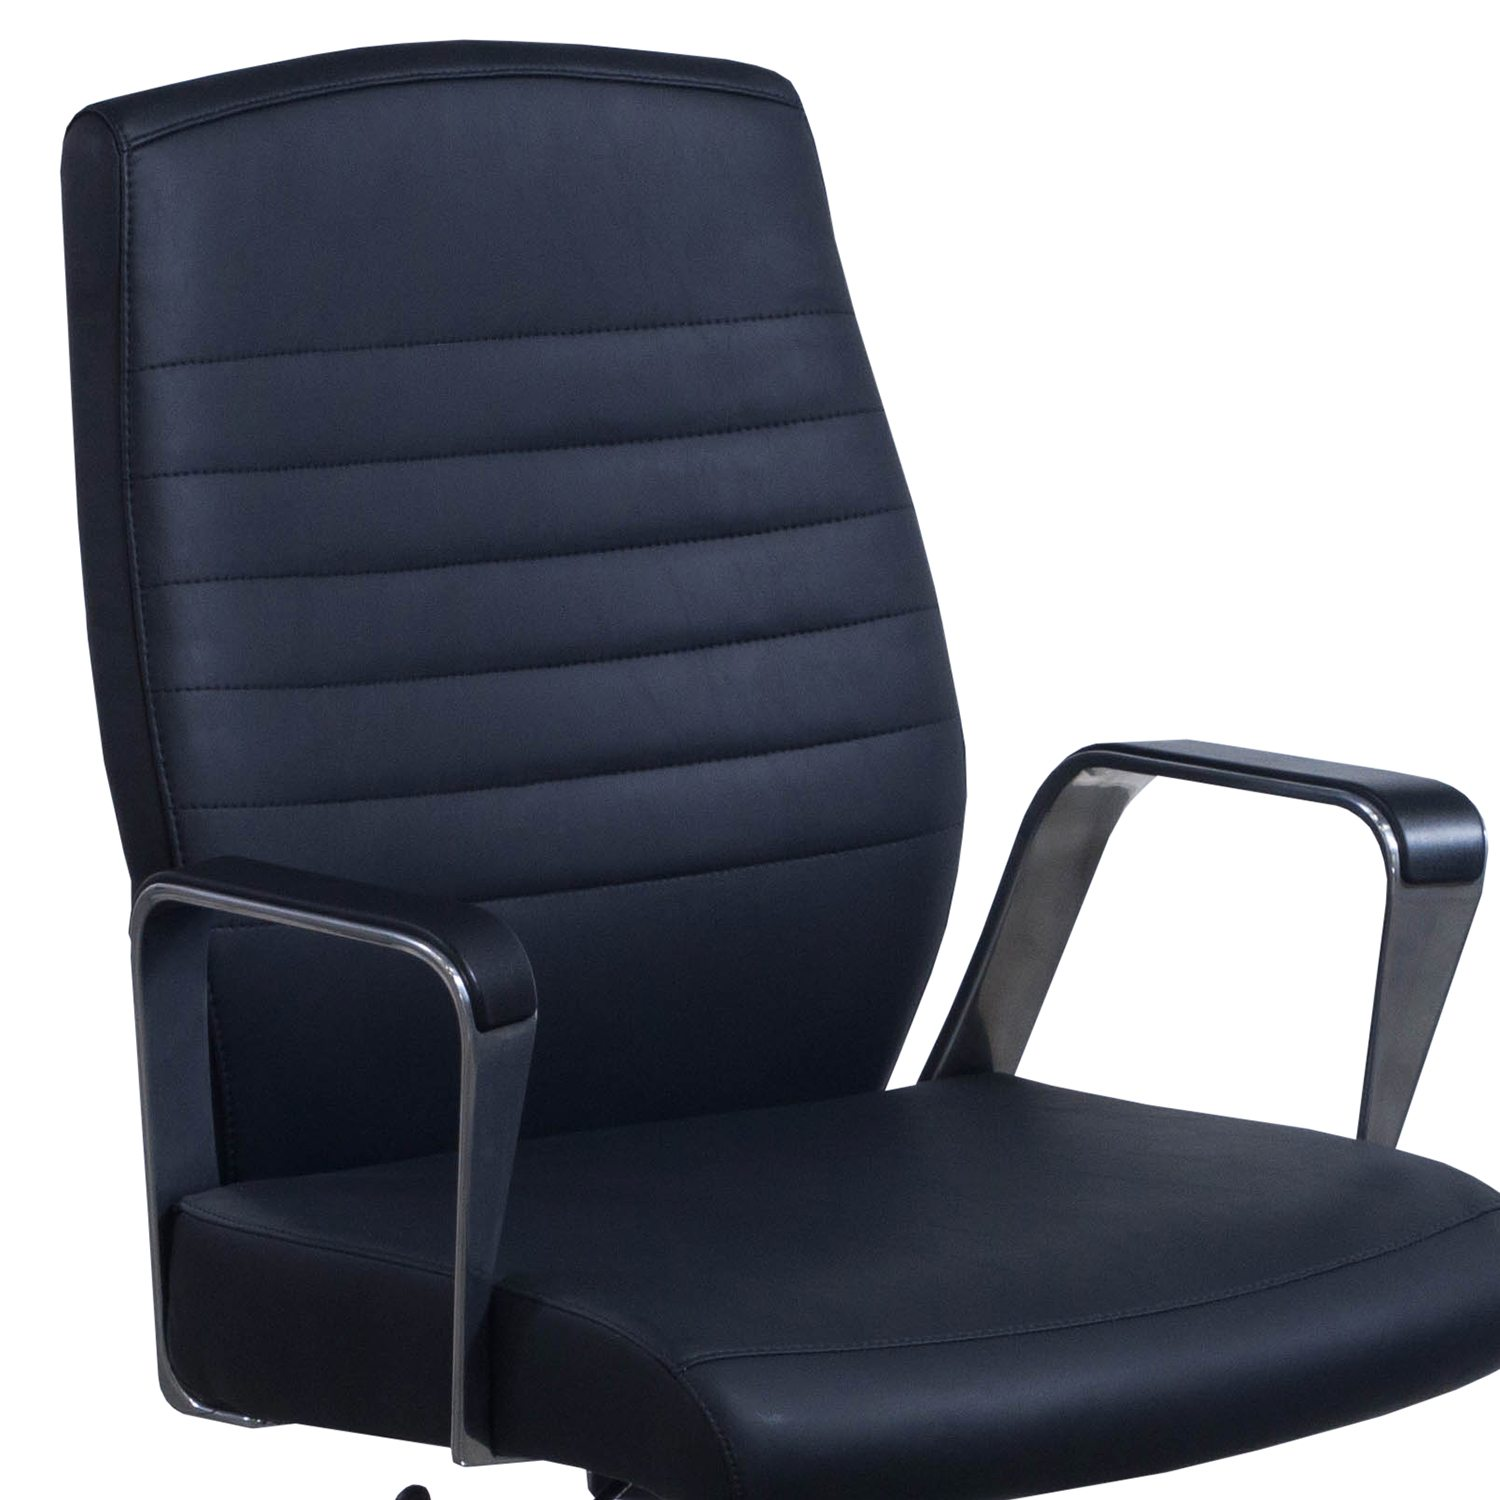 Highmark Fino Conference Chair In Black PU Leather   Arm